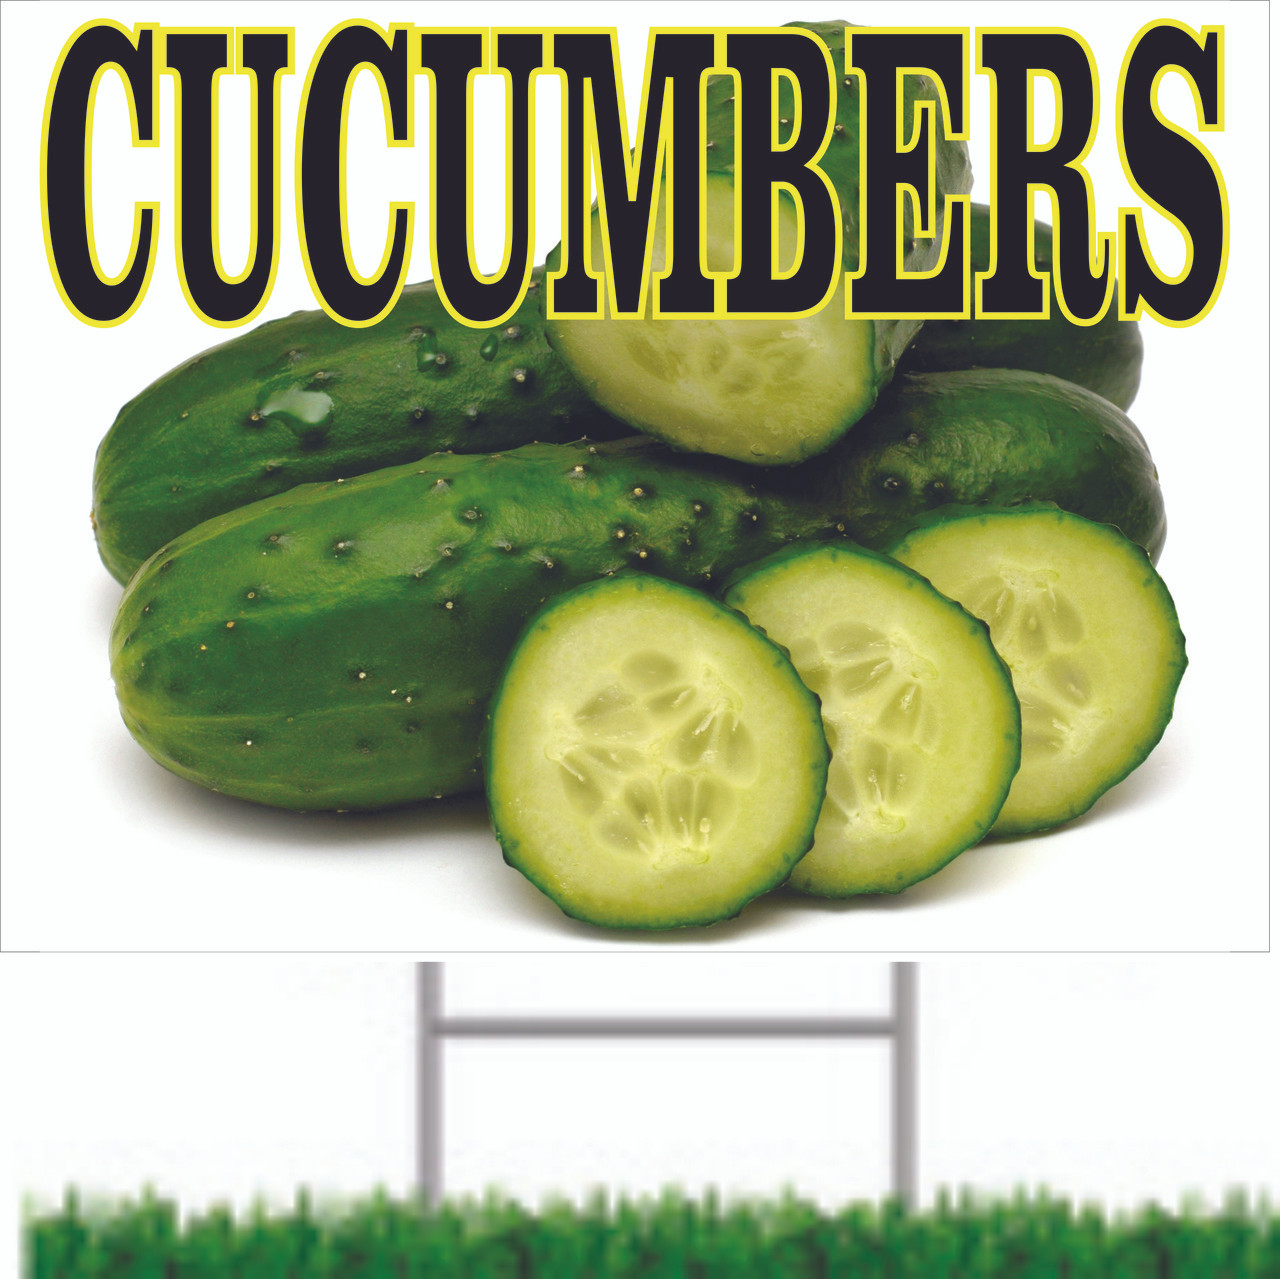 Cucumbers Road Sign Will Bring In Customers.